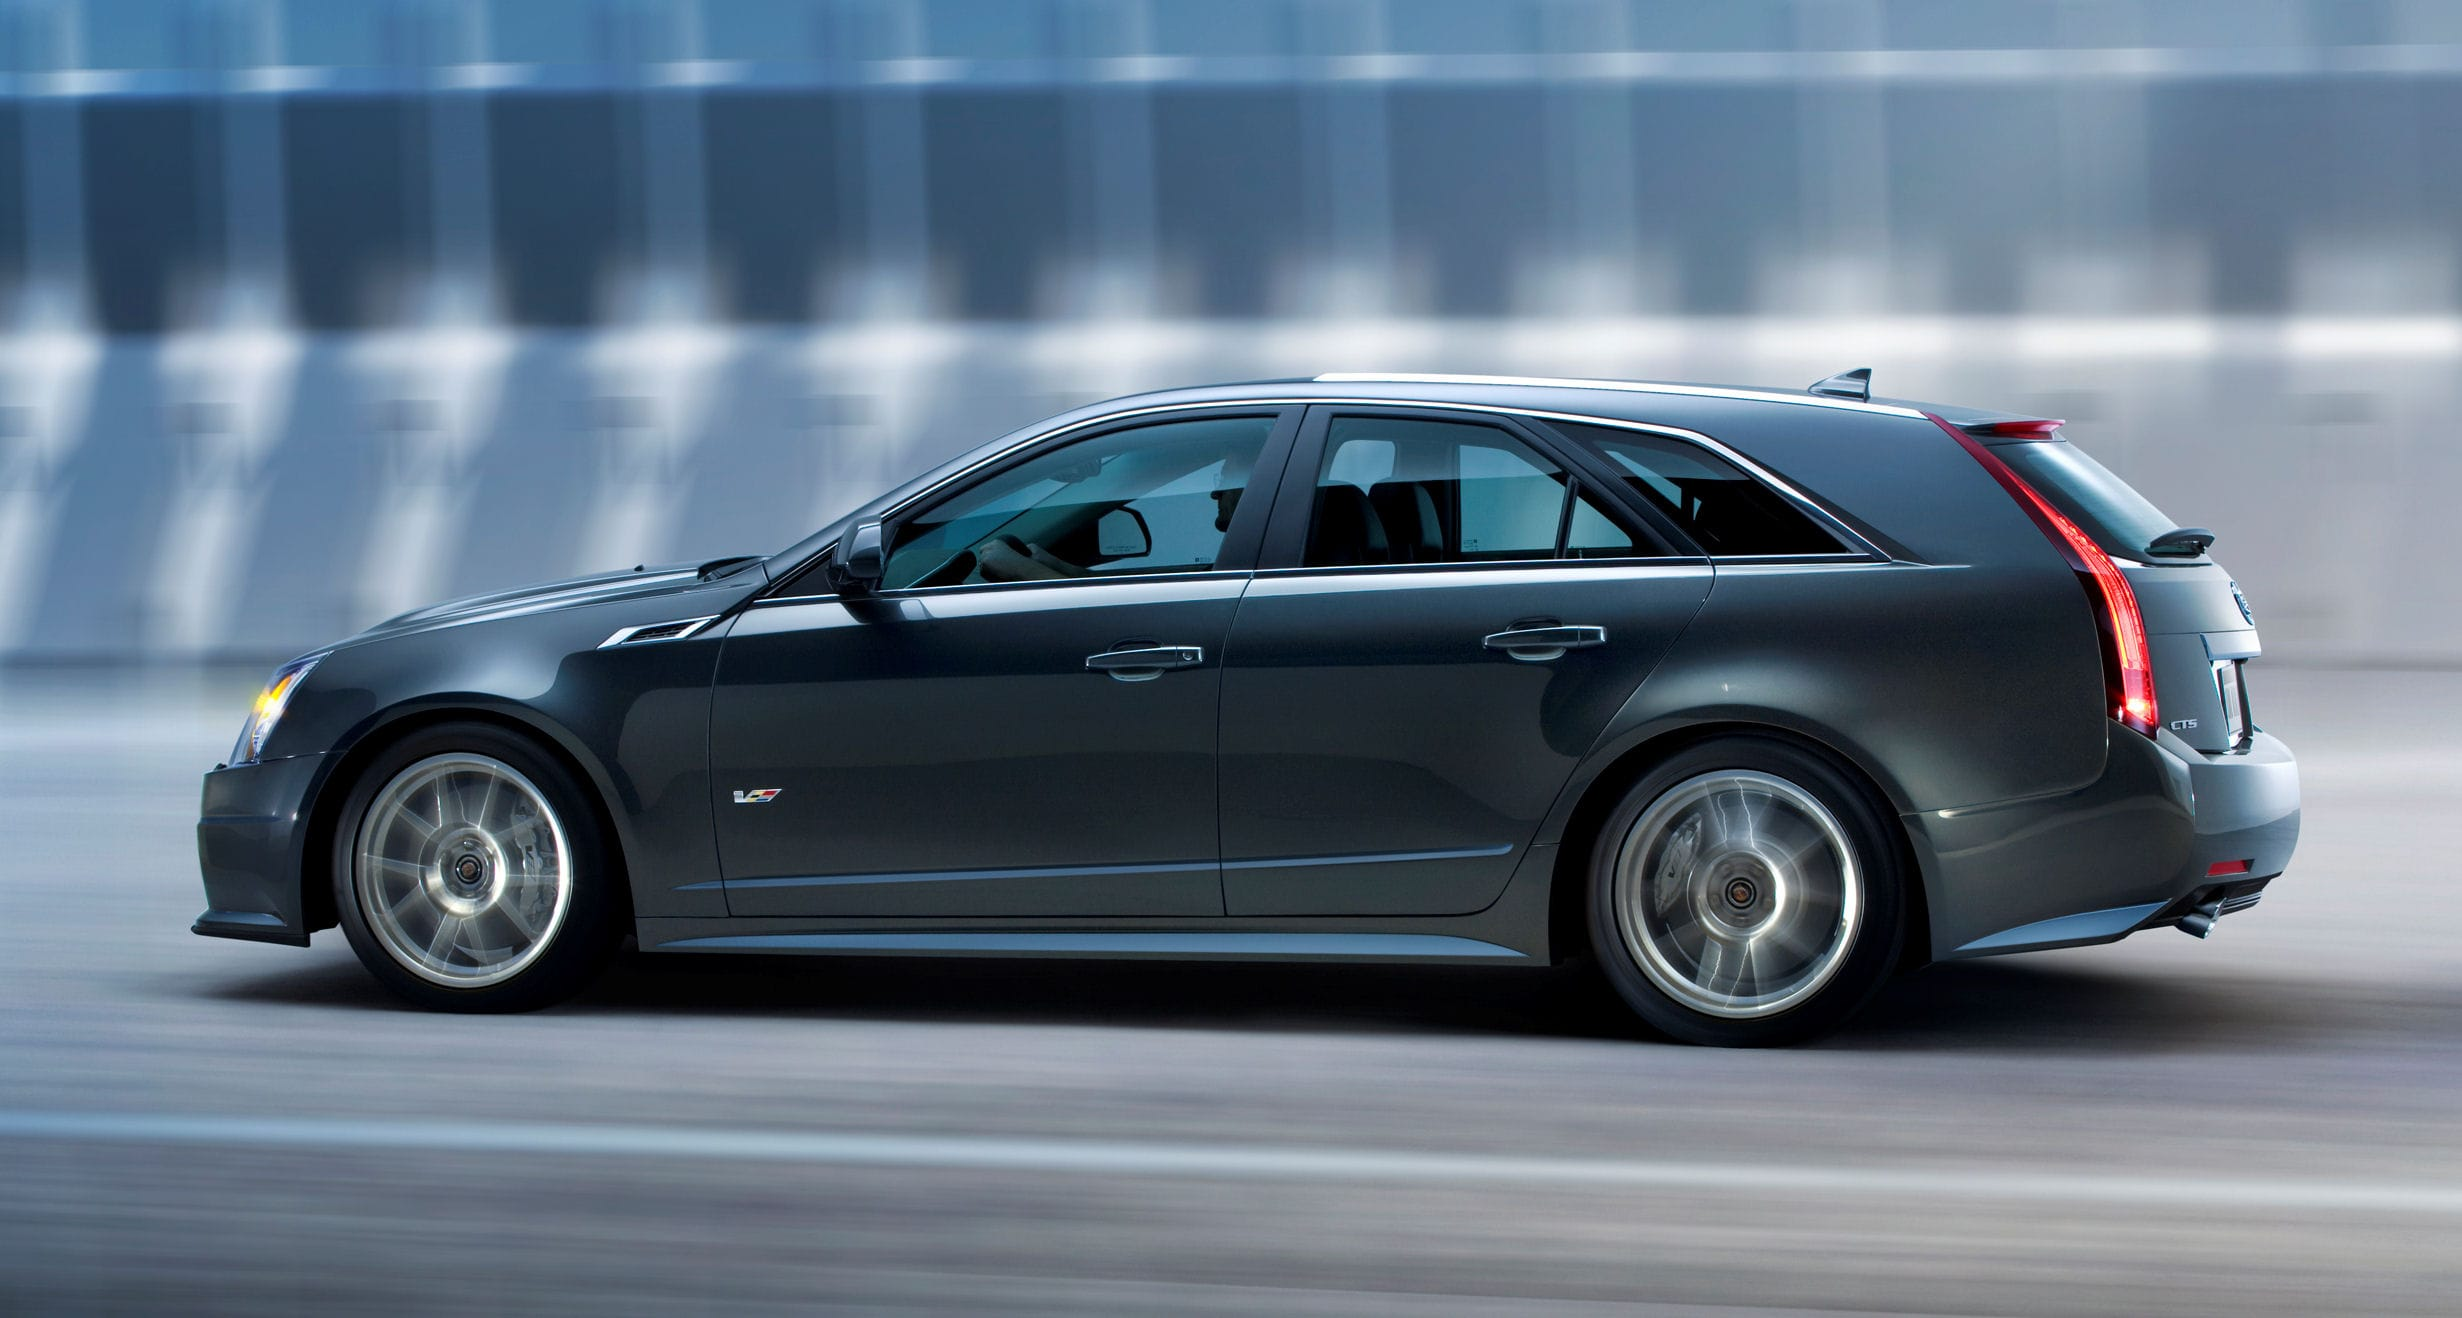 Cadillac CTS-V Wagon Full hd wallpapers